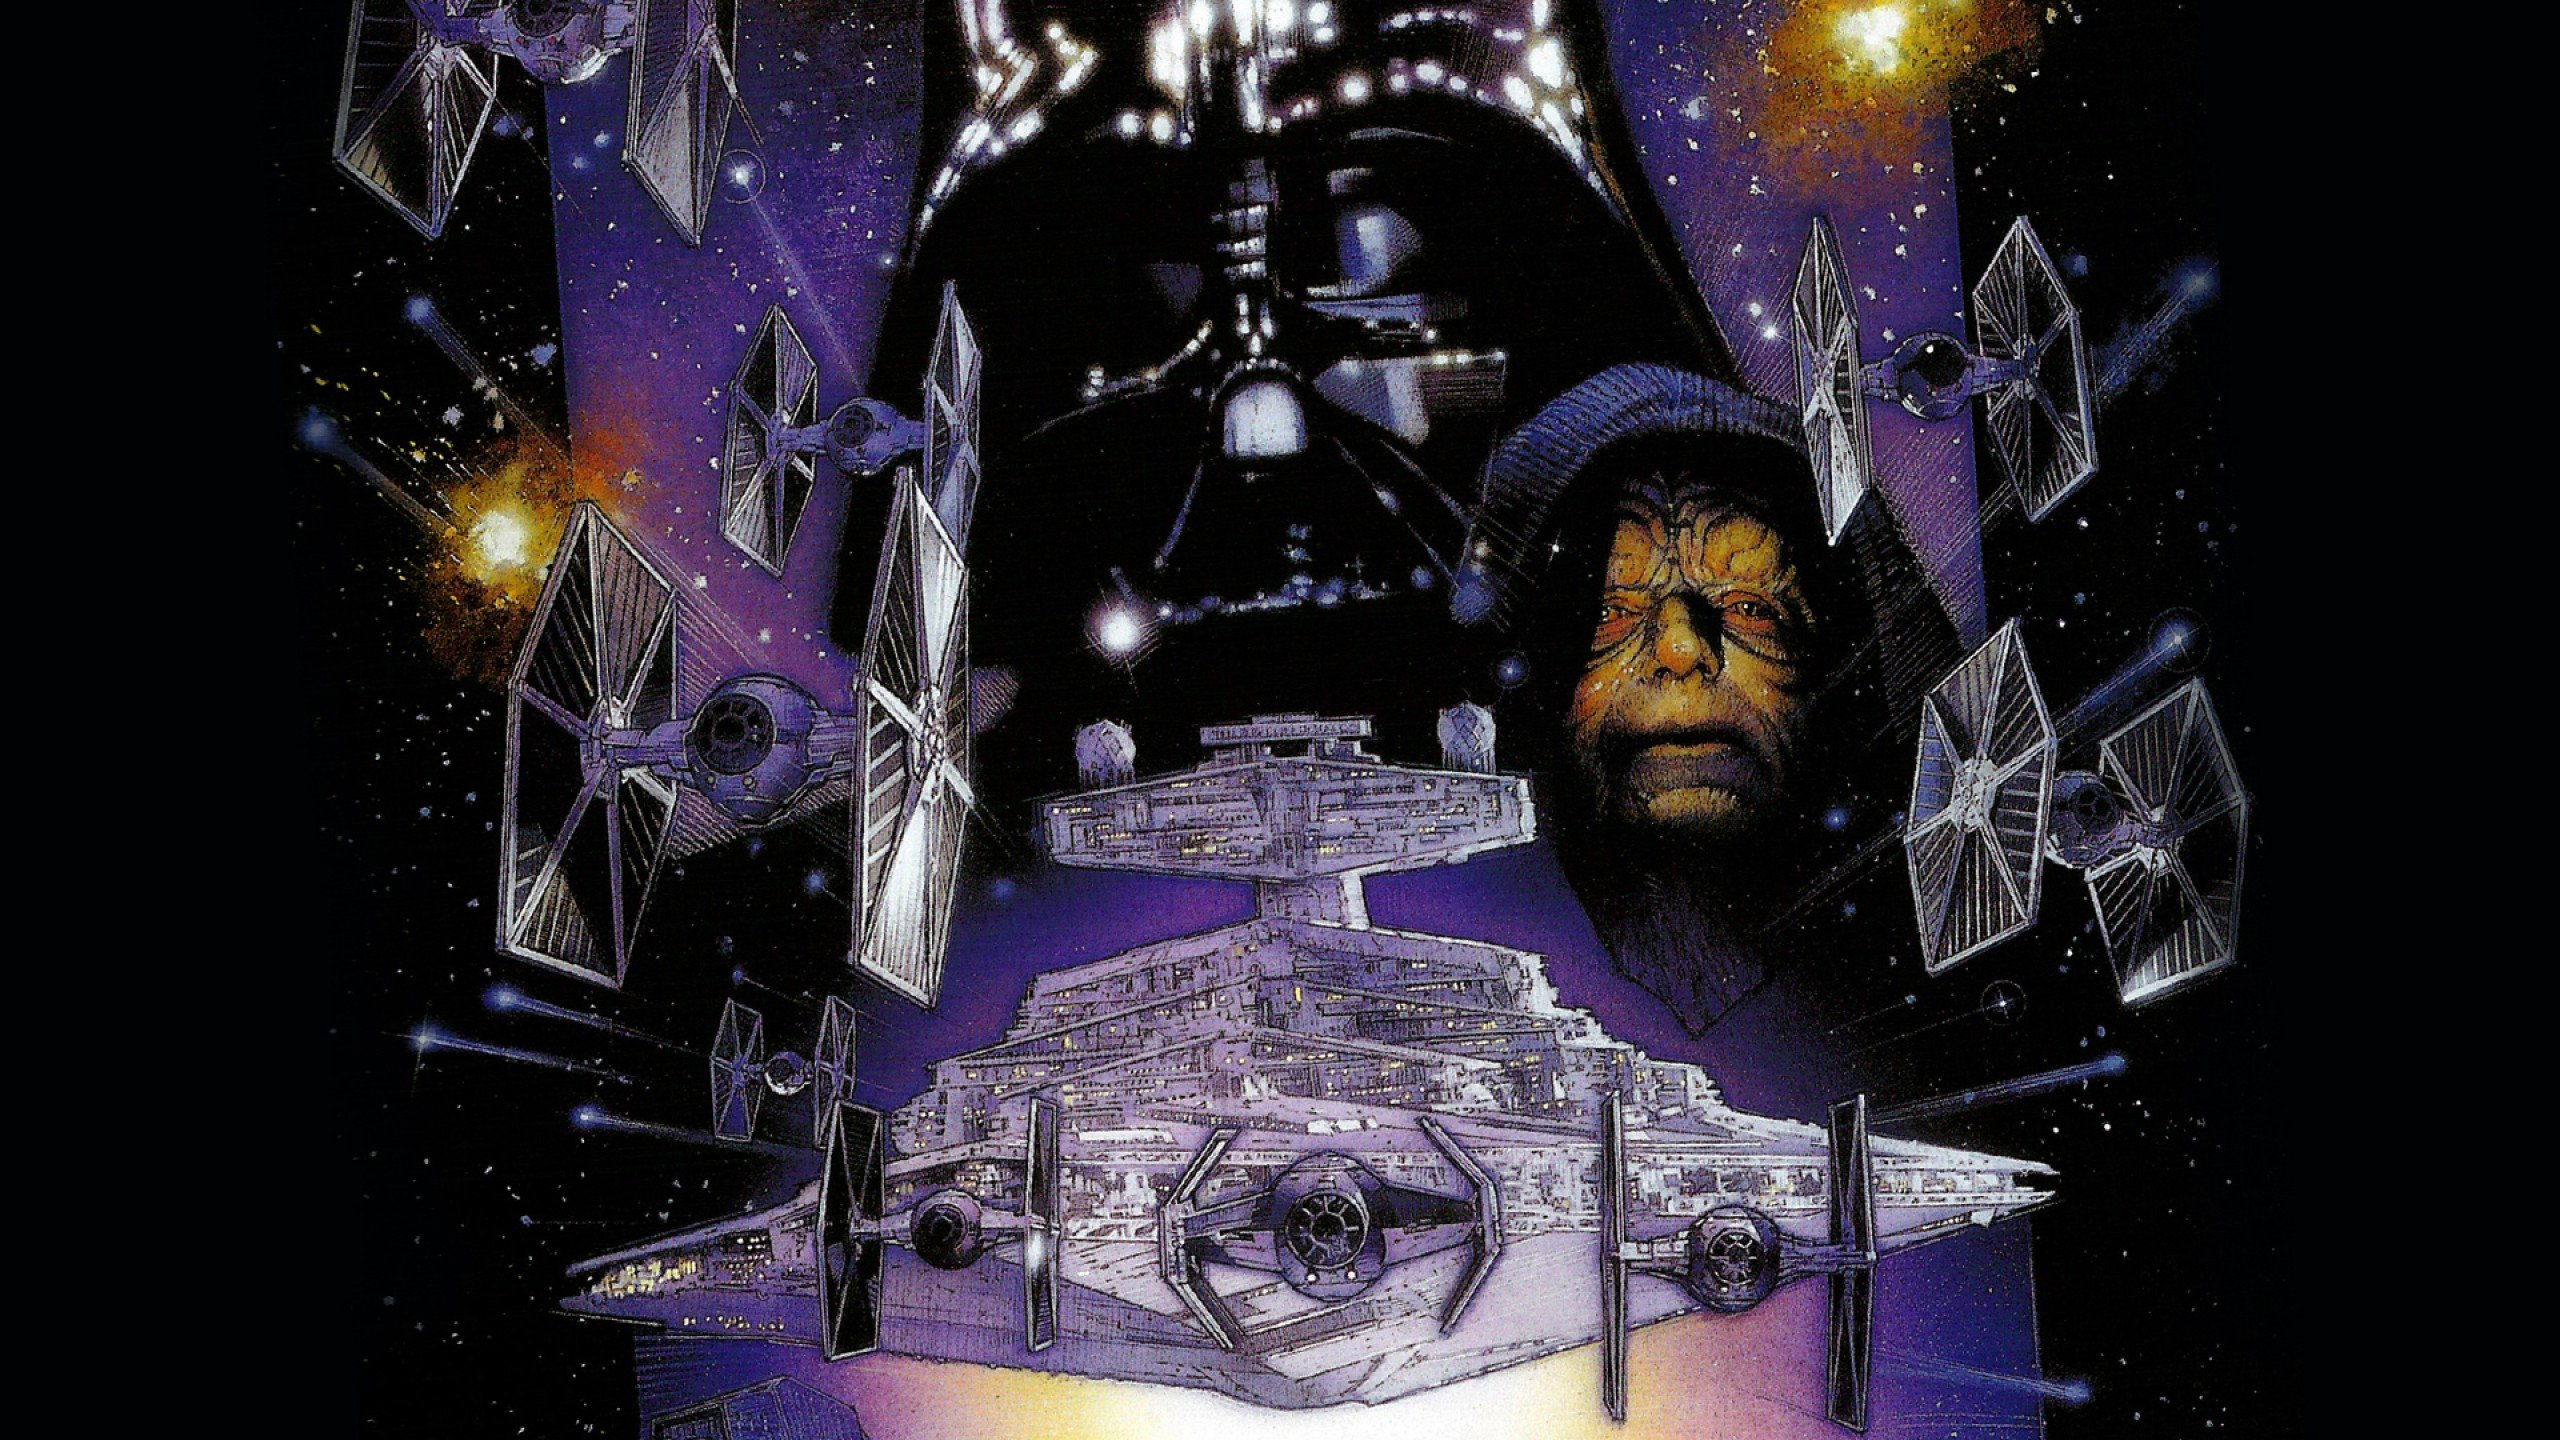 Download Star Wars The Empire Strikes Back Wallpaper Gallery